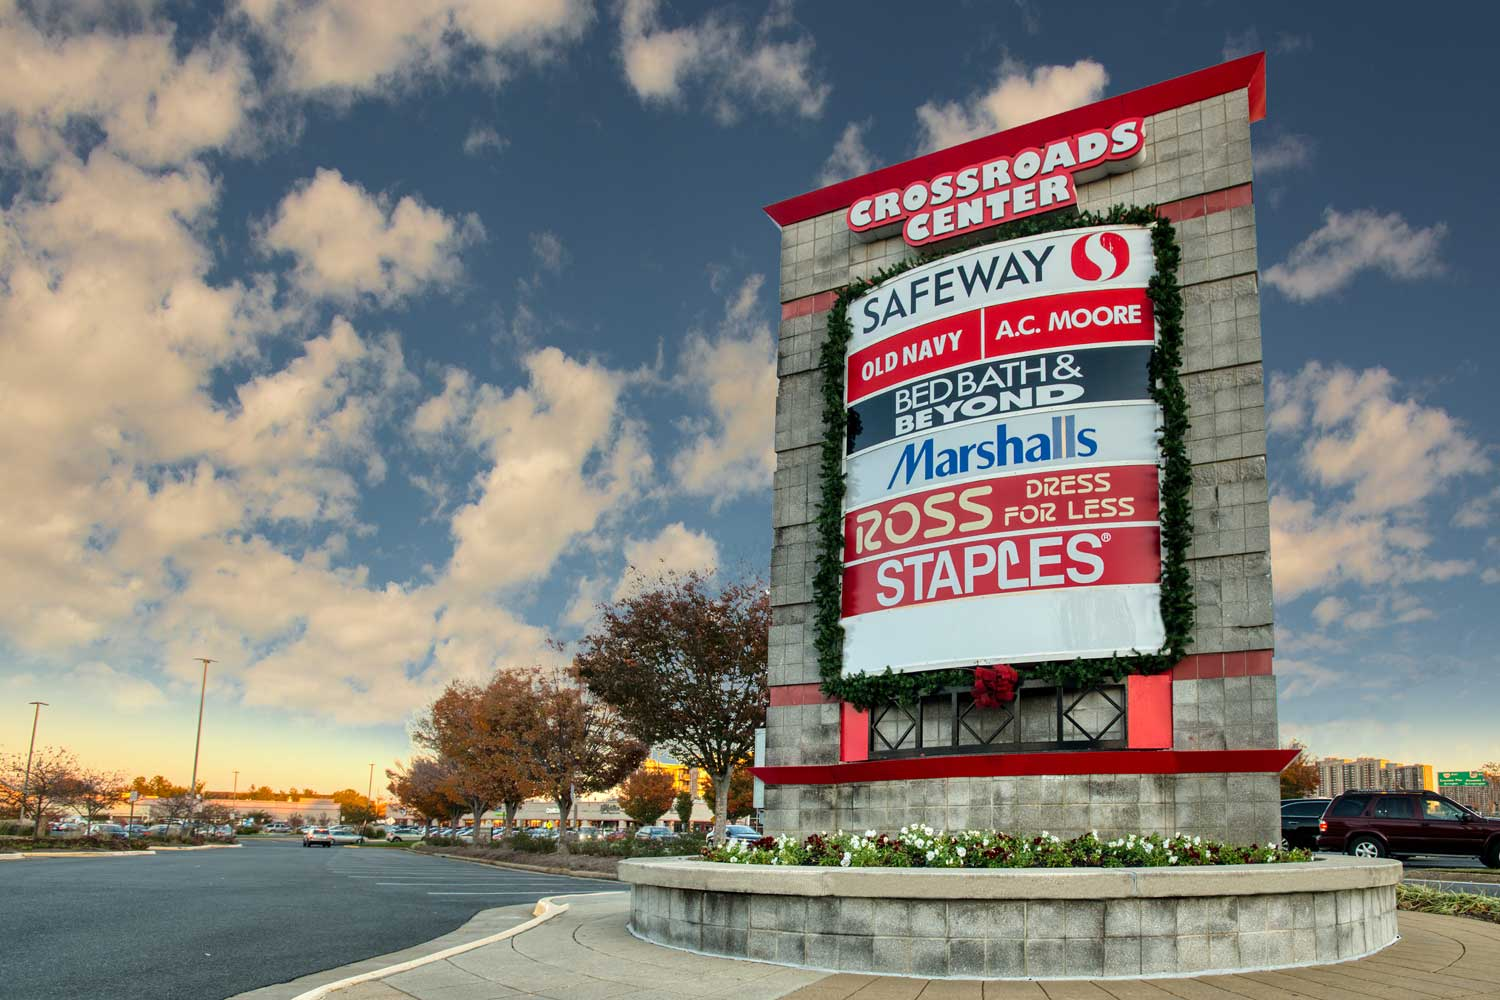 Crossroads Center is 10 minutes from Woodmont Park Apartments in Alexandria, VA